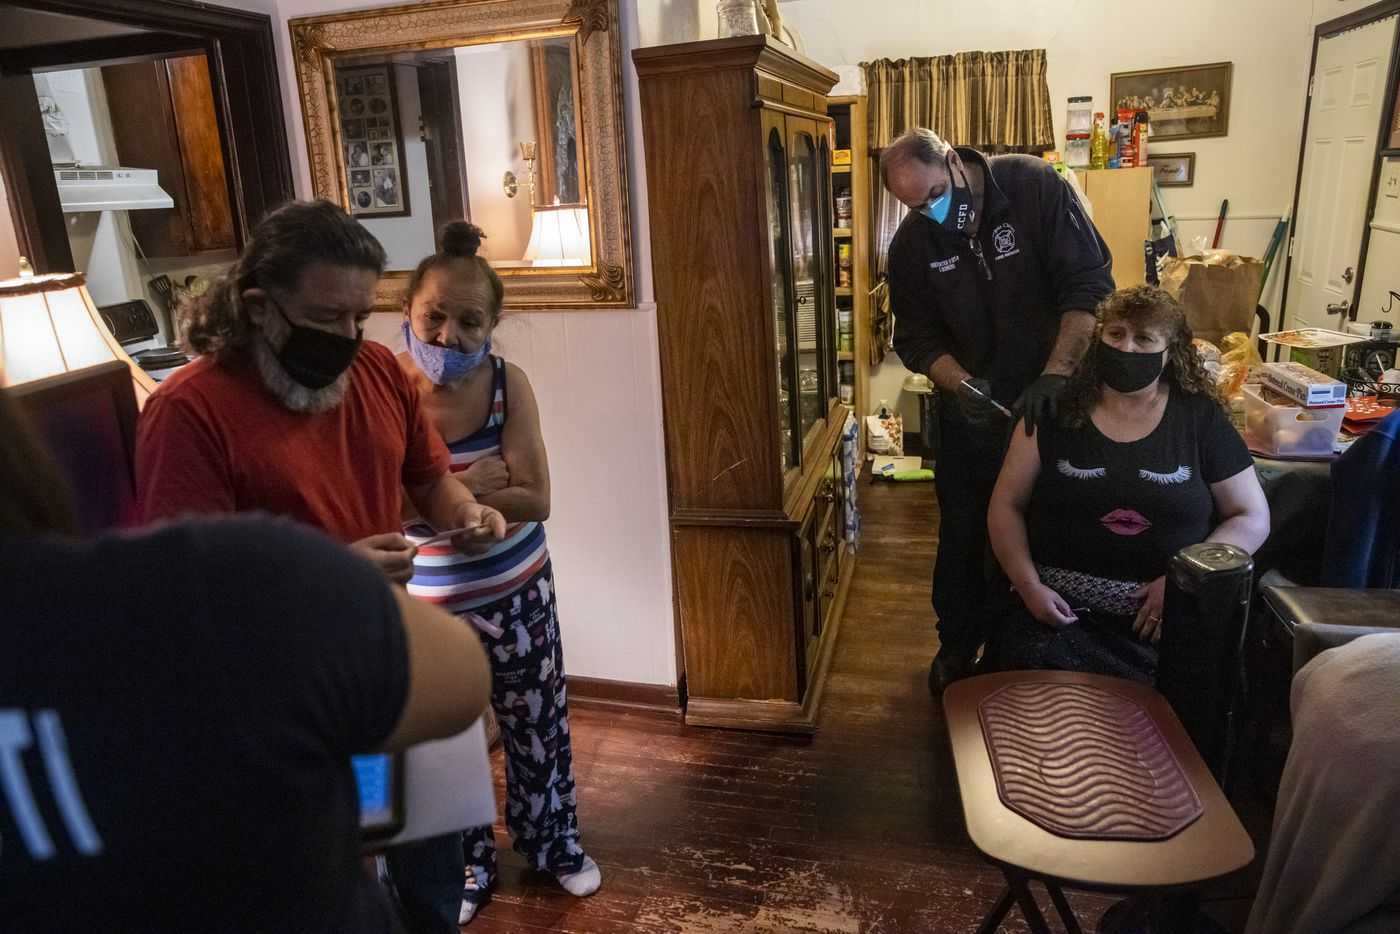 """Firefighter II/EMT Steve Bowers (second from right) administers the first dose of the Moderna COVID-19 vaccine to caregiver Fidelina Reséndiz at the home of spouses Gilbert (left) and Janie Muñoz in Corpus Christi, Texas, on Monday, Feb. 1, 2021. The Corpus Christi Fire Department has spearheaded a program for administering COVID-19 vaccines to vulnerable elderly populations through utilizing existing rosters kept by the city's Meals on Wheels initiative and those of other civil senior service programs. """"I feel like it will be a good prevention and I'm very grateful that they gave it to me,"""" Reséndiz said, in Spanish. (Lynda M. González/The Dallas Morning News)"""